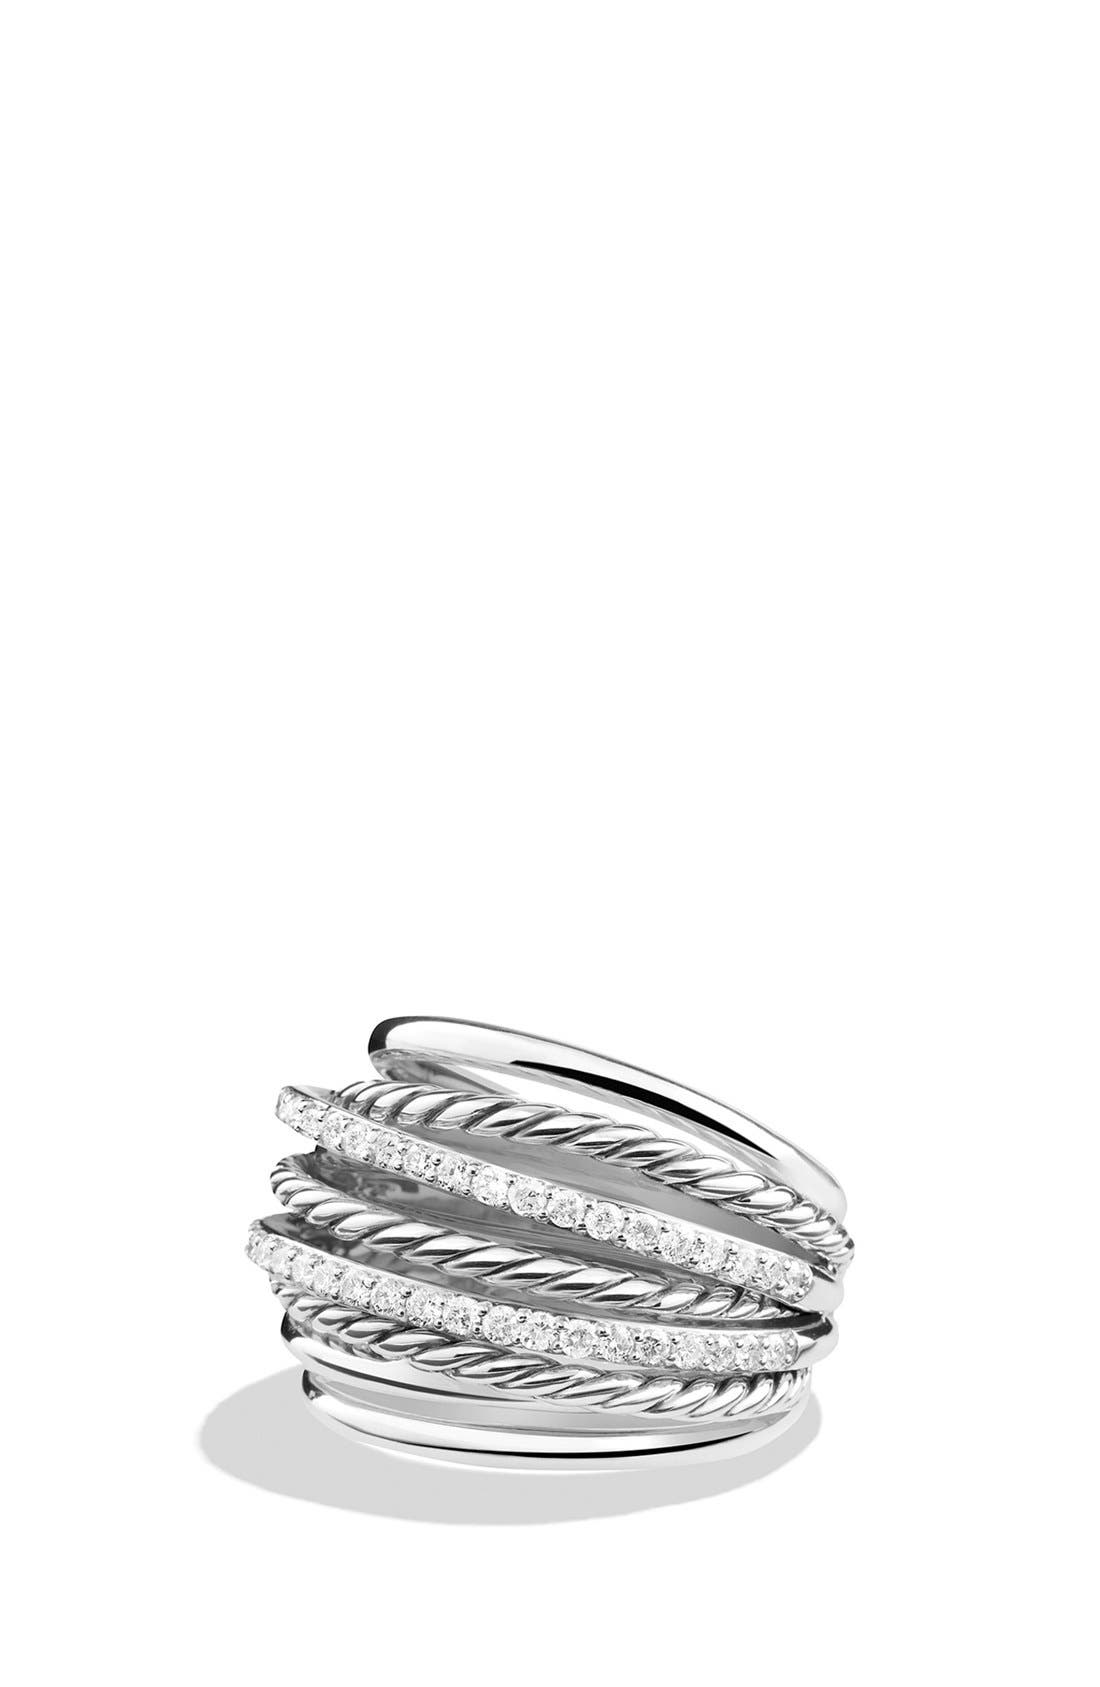 Alternate Image 1 Selected - David Yurman 'Crossover' Dome Ring with Diamonds